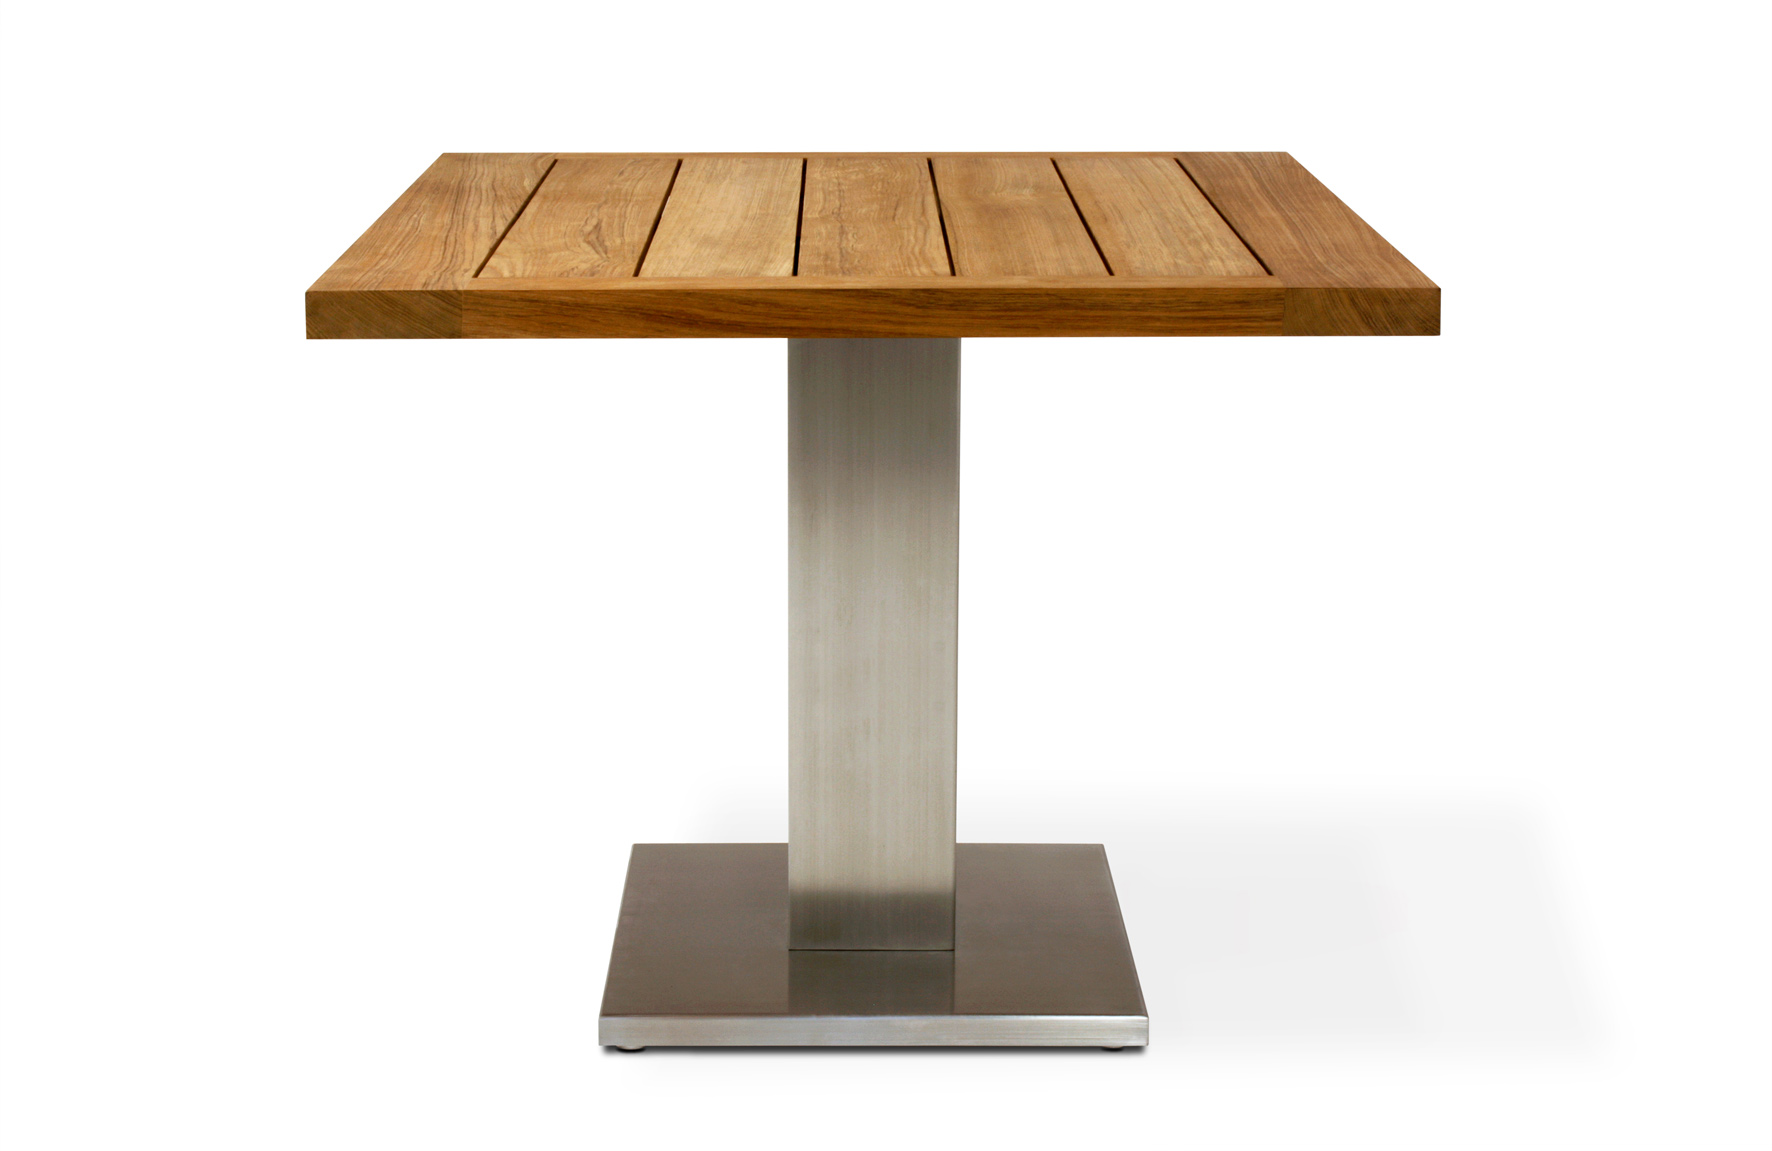 Singular Table with teak tabletop